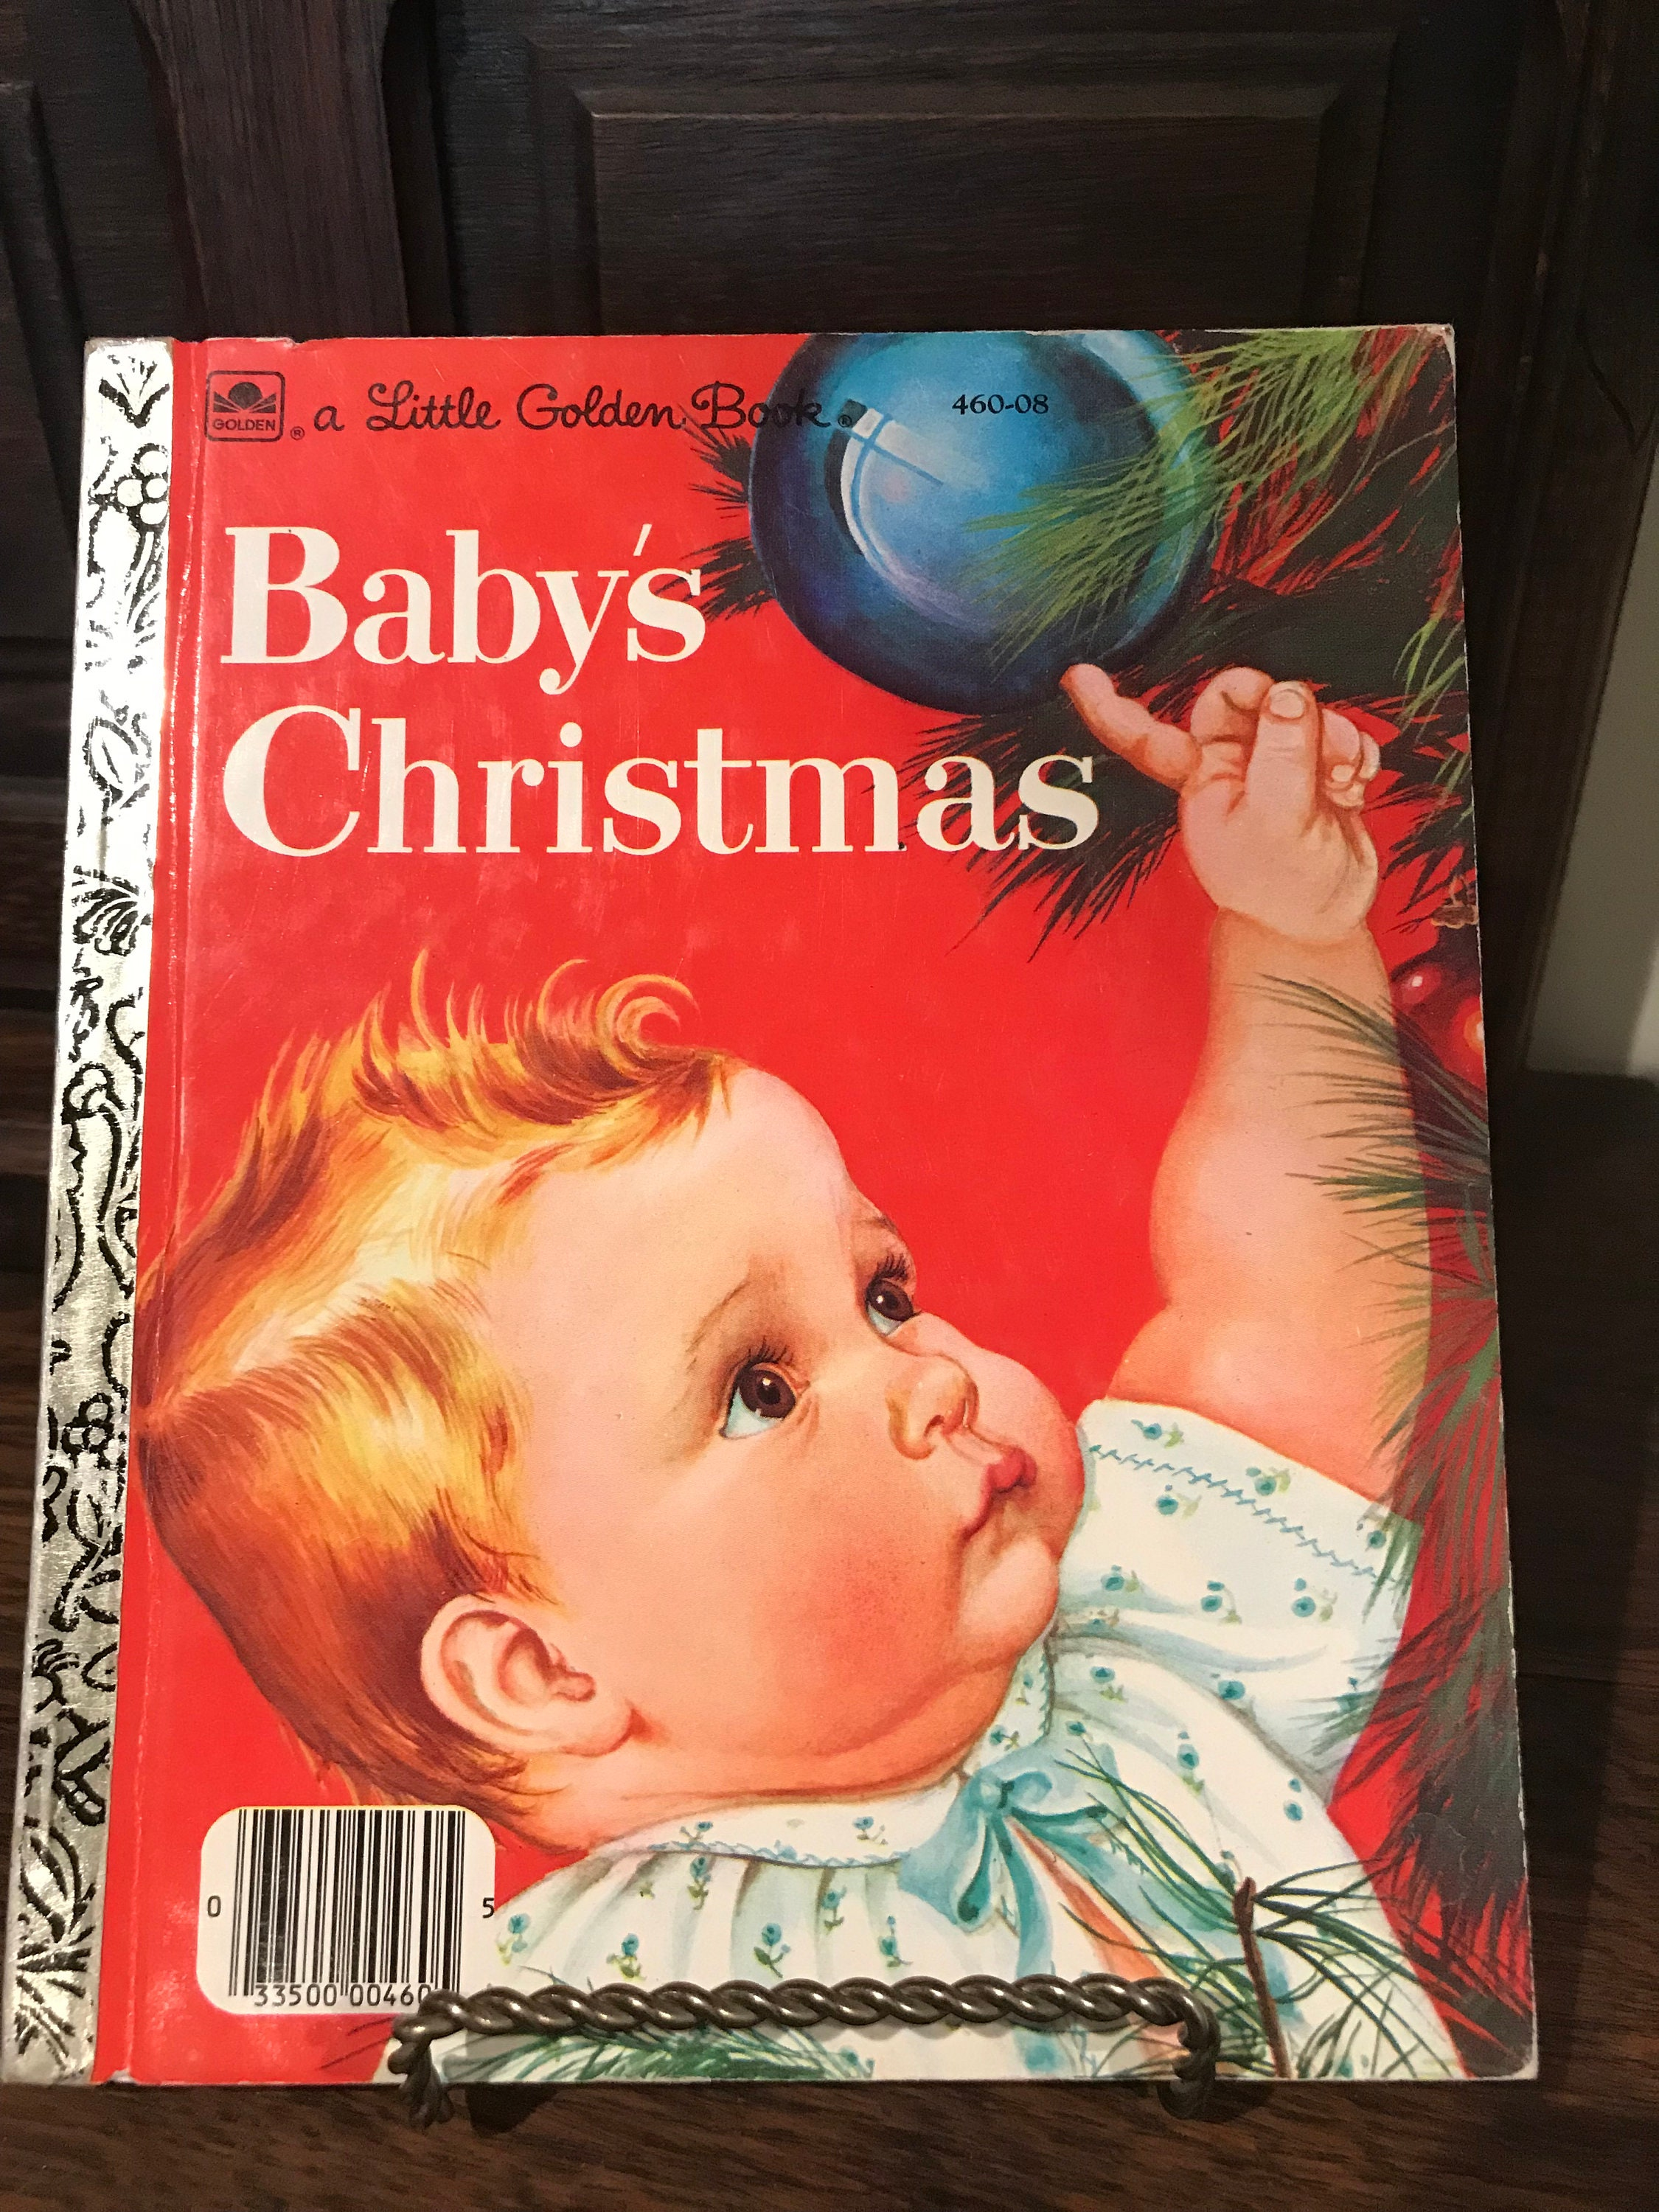 Eloise At Christmastime Vhs.Baby S Christmas A Little Golden Book By Esther Wilkin